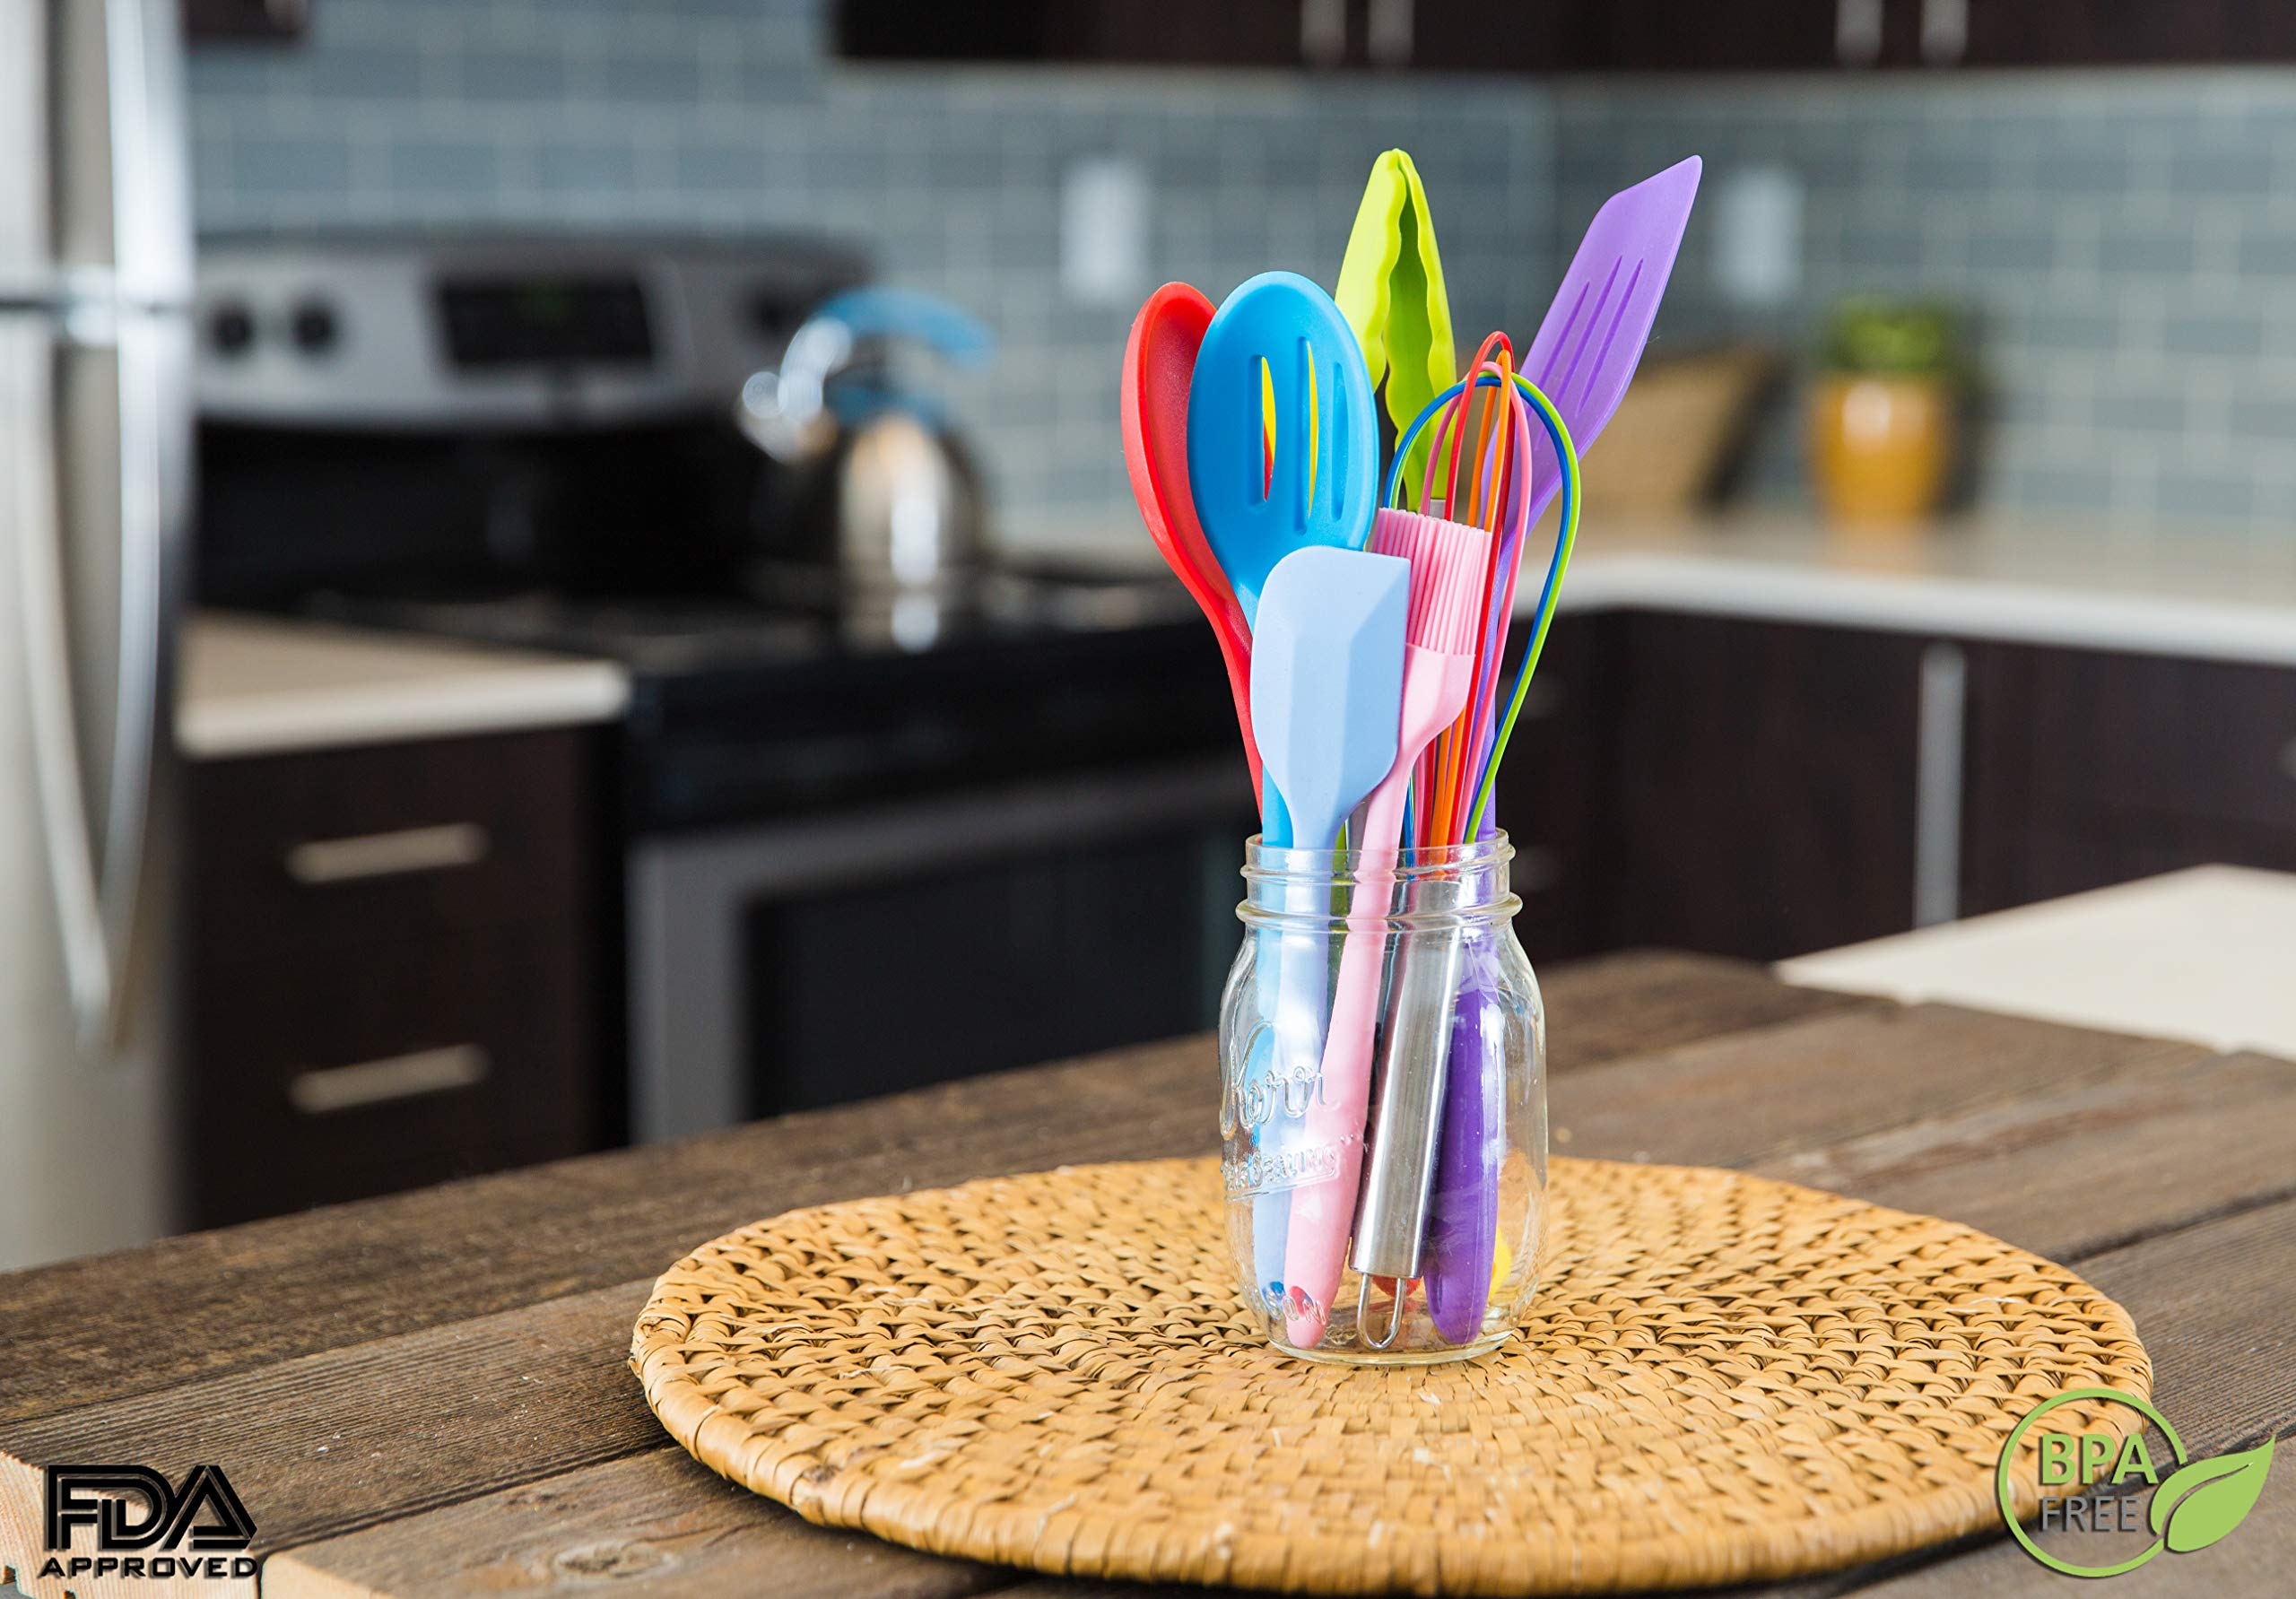 11pc Silicone Kitchen Utensil Set by CuisineFacets Colorful Cooking Utensils with Spatula, Serving Tools, Accessories and FREE Spoon Rest - Heat Resistant Spatulas and Spoons for Non-Stick Cookware 5 ✅11PC incl. FREE SPOON REST: Imagine how many colorful food creations you can now unleash all at once, because your utensil set includes everything! Silicone Wisk, Pastry Brush, 2x Spatulas, Slotted Spoon, Salad Spoon, Food Tong, All-Purpose Spoon, large Ladle, Slotted Turner, and BONUS Spoon Rest. ✅HEAT RESISTANT & EASY TO CLEAN: From the Rainbow Whisk to the Pink Pastry Brush, just pop your silicone kitchen utensils in the dishwasher to clean. Everything is made from FDA Compliant Food Grade Silicone and can withstand temperatures up to 446°F... like steaming hot pasta, pumpkin soup or pancakes. ✅WHAT'S YOUR FAVE? If you're like most people, there are always 1 or 2 kitchen tools you love the most. And if you're like us, it could even be because of color. Either way, our Cheery Utensils Set from CuisineFacets gives you the best of both - your favorite non-stick kitchen utensils, in your favorite colors too.